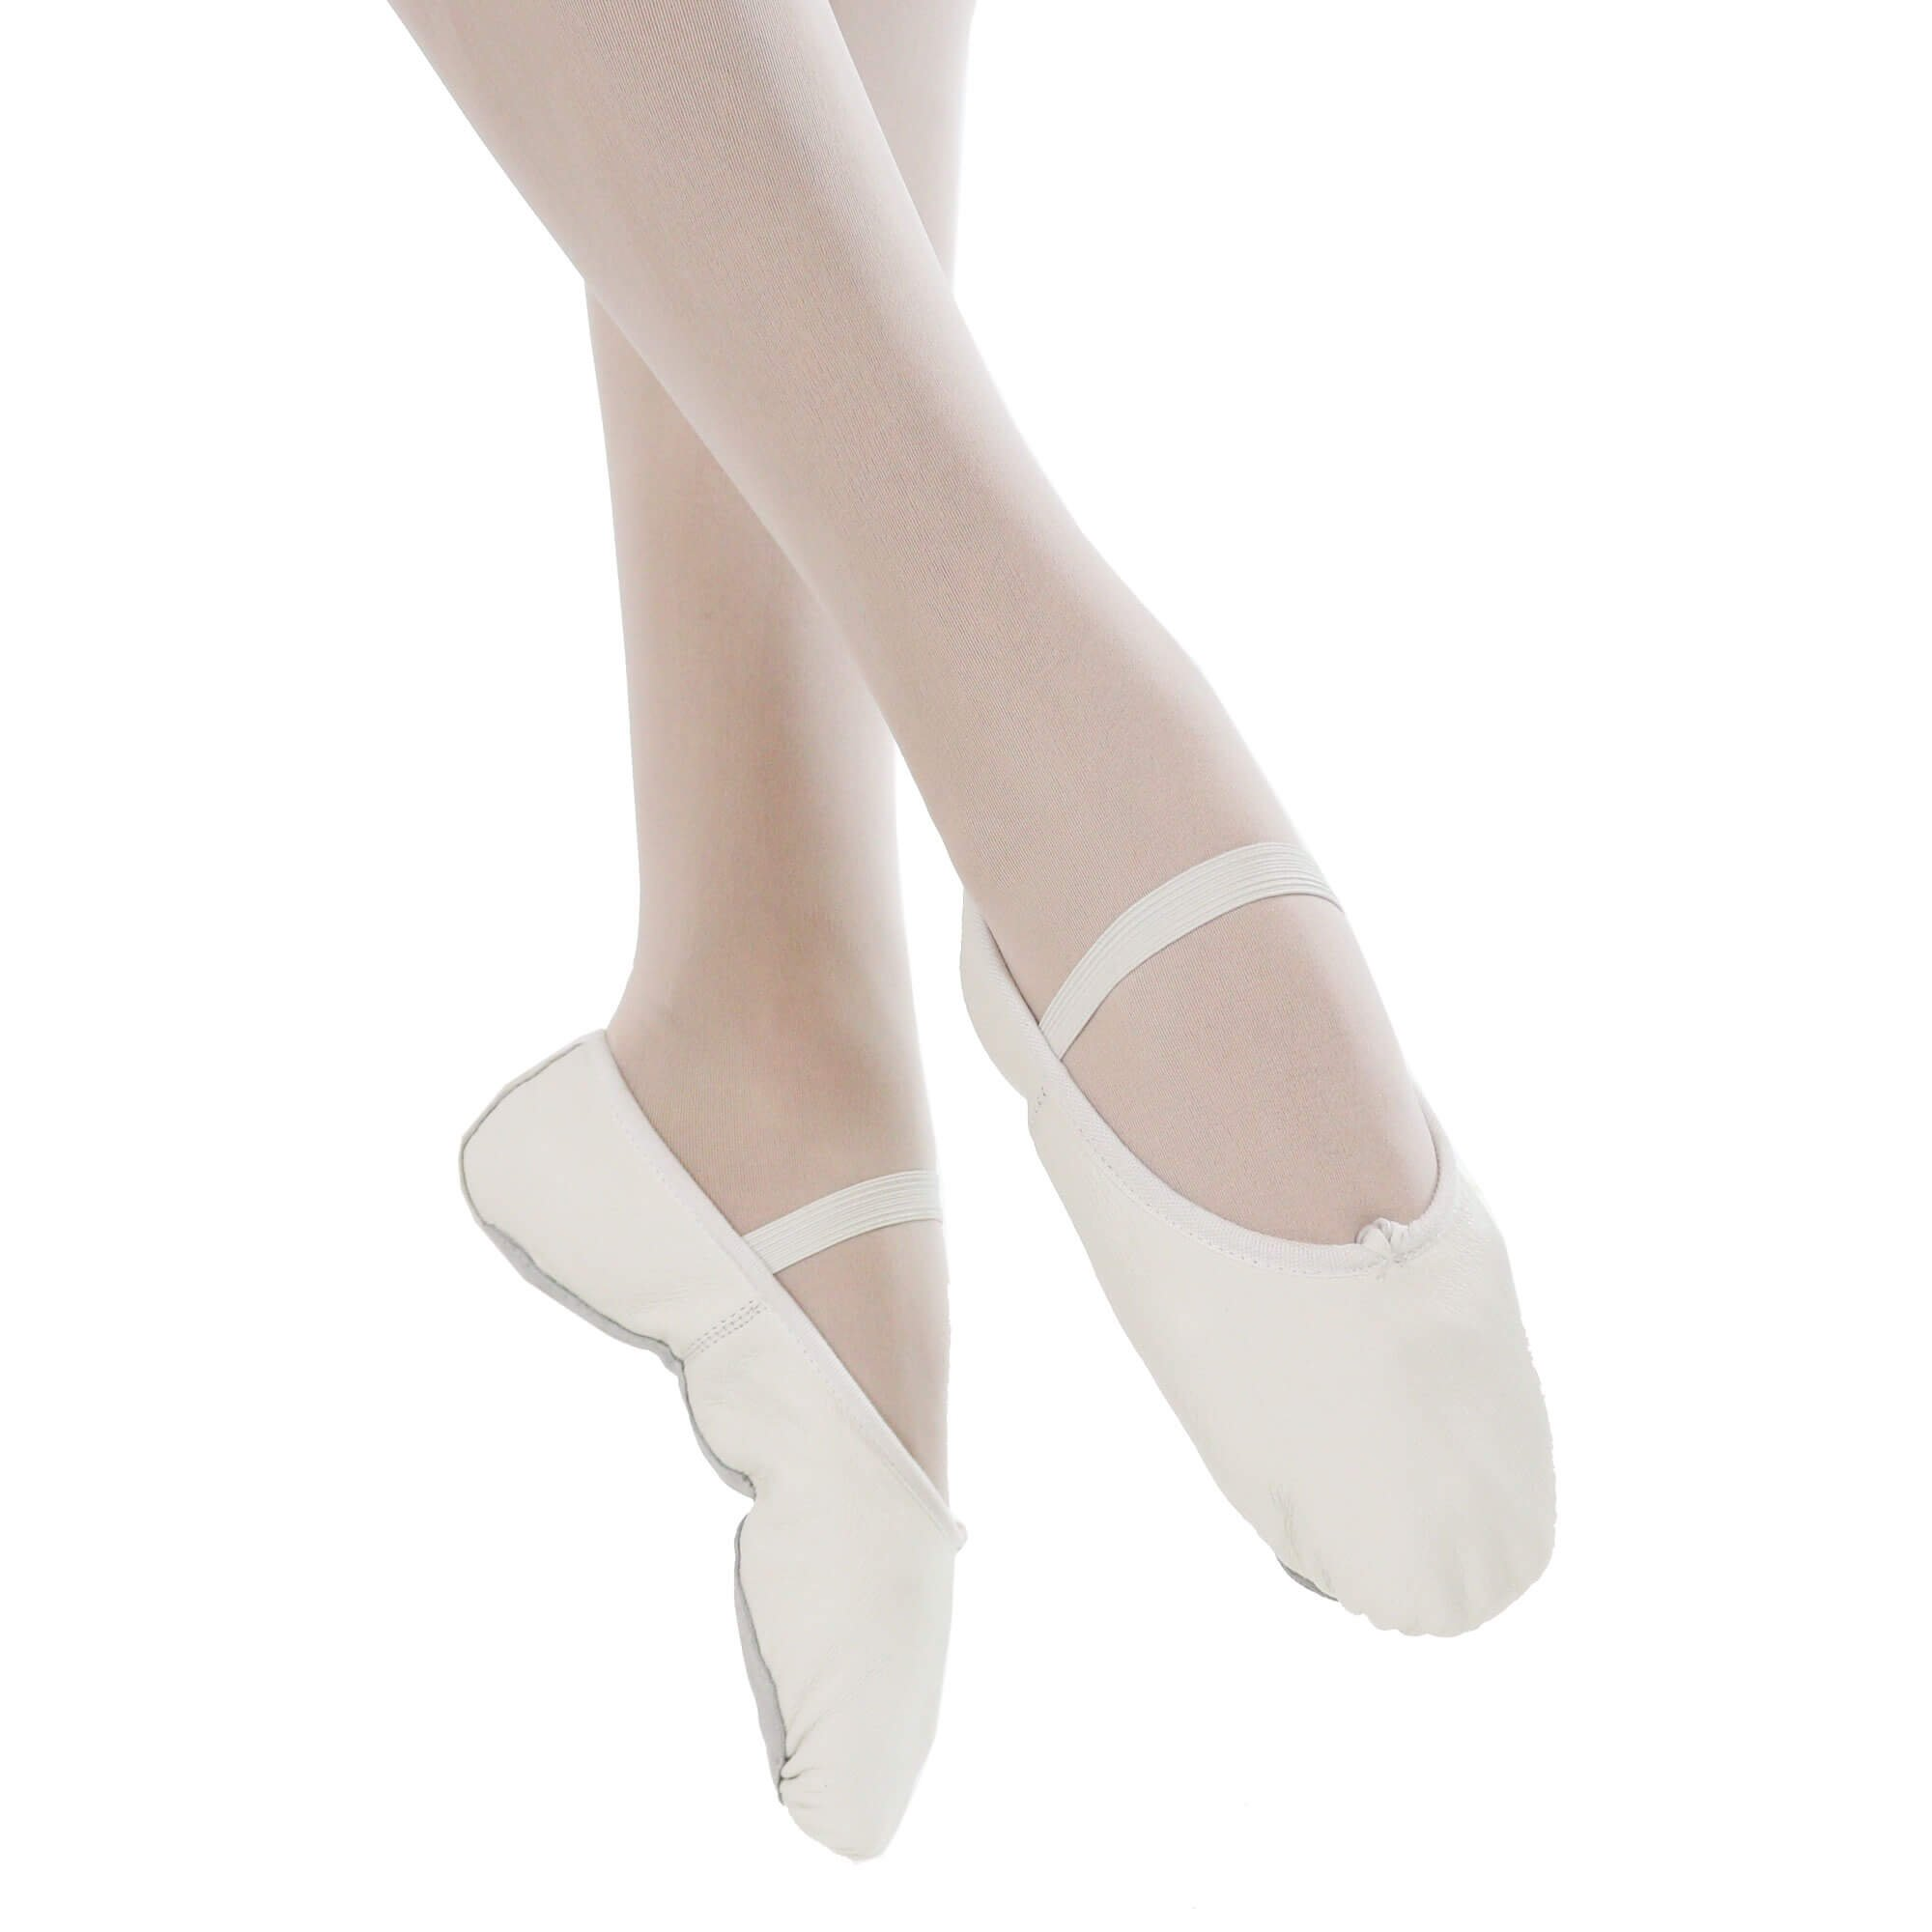 Danzcue Child Full Sole Leather Ballet Slipper